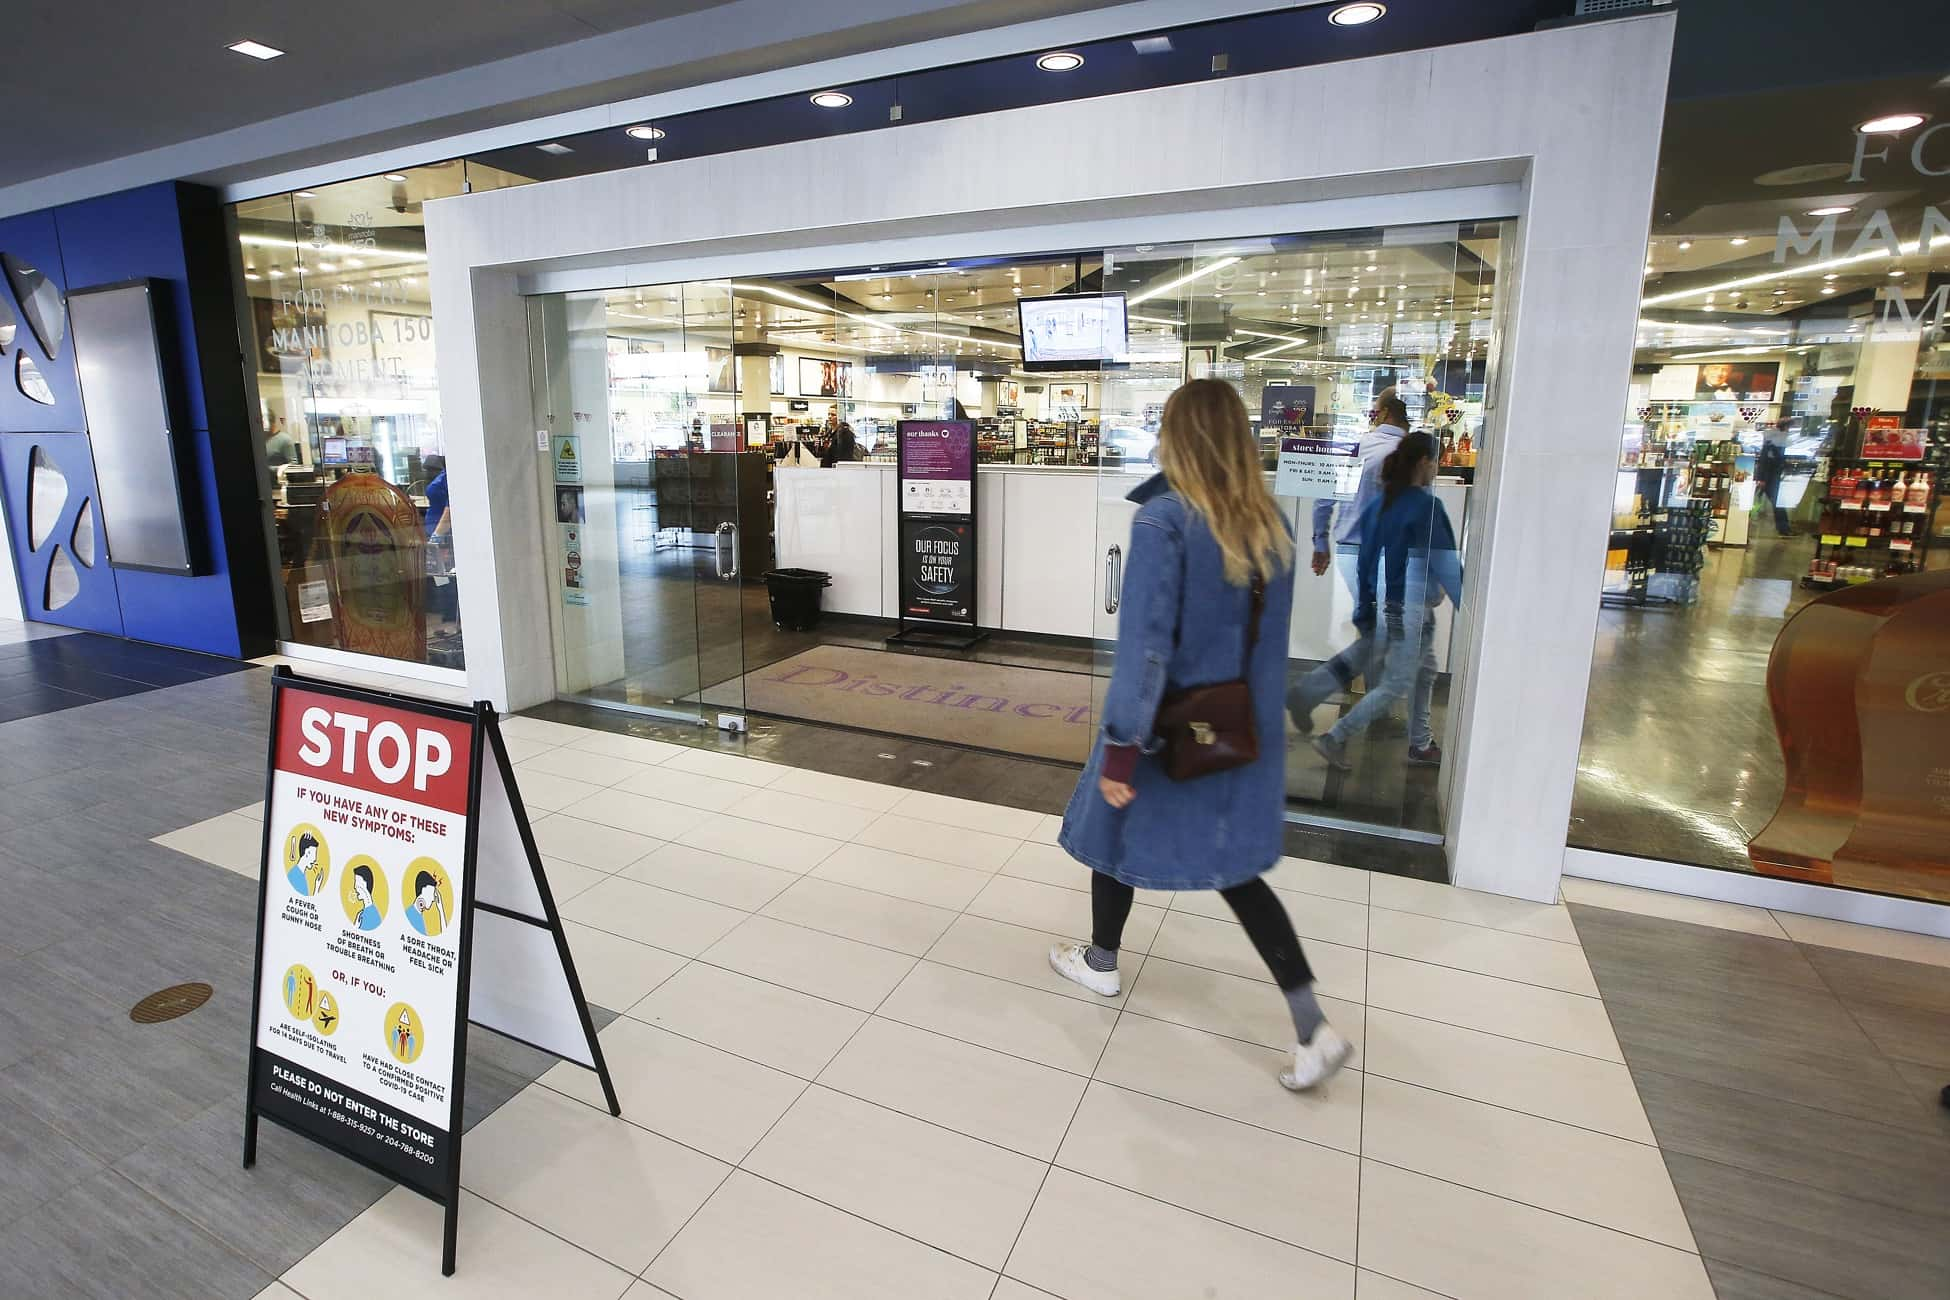 Manny Atwal, Manitoba Liquor and Lotteries chief executive officer, said the corporation was not able to slow the rate or severity of thefts despite launching an anti-theft strategy more than a year ago and seeing some initial positive results. (John Woods / Winnipeg Free Press)